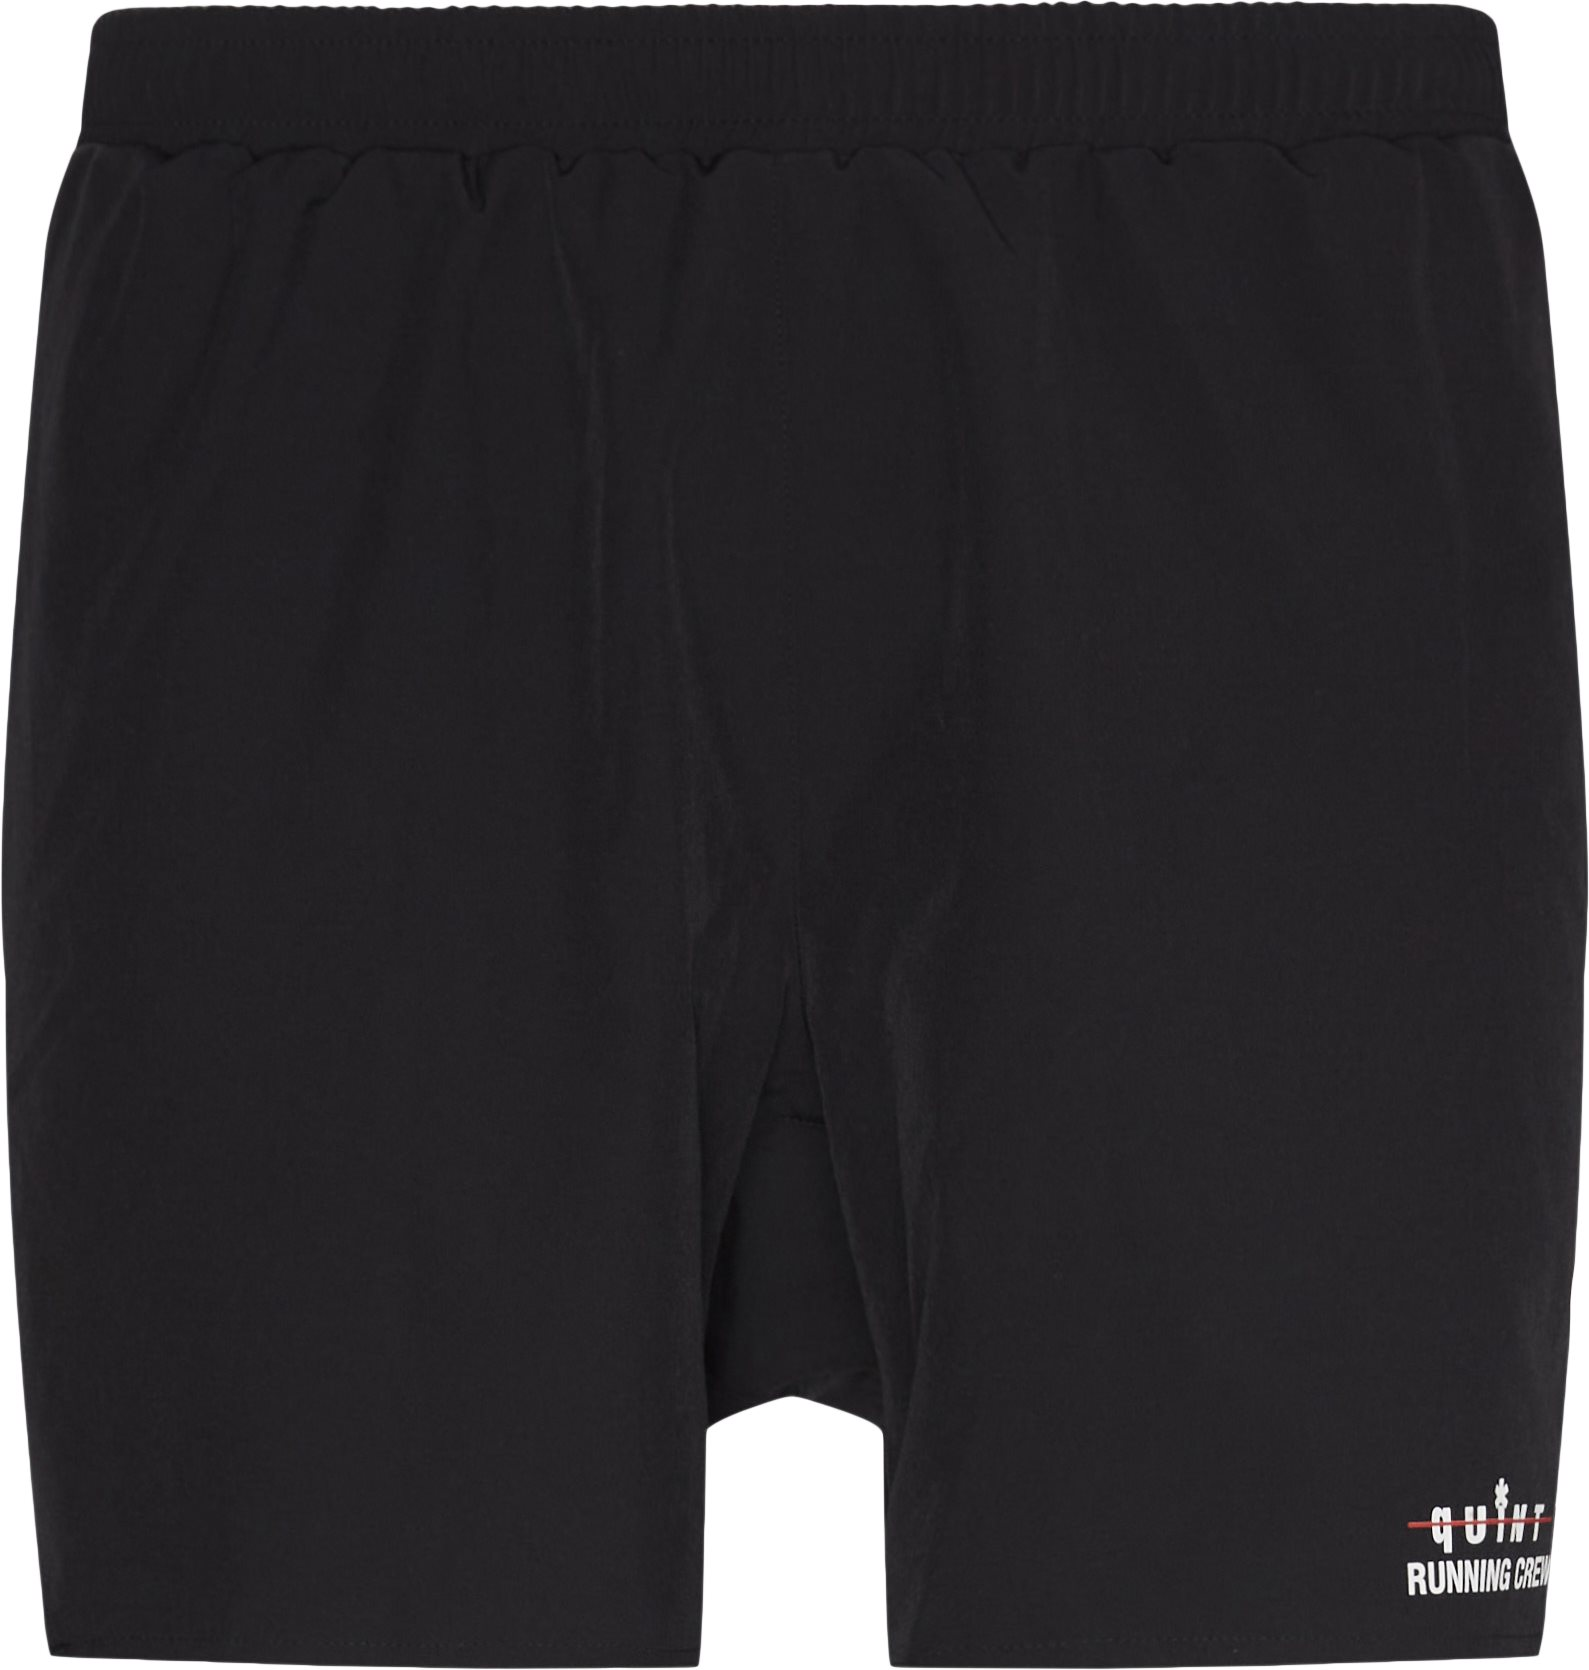 Quint Running Crew Scott Shorts - Shorts - Regular - Sort